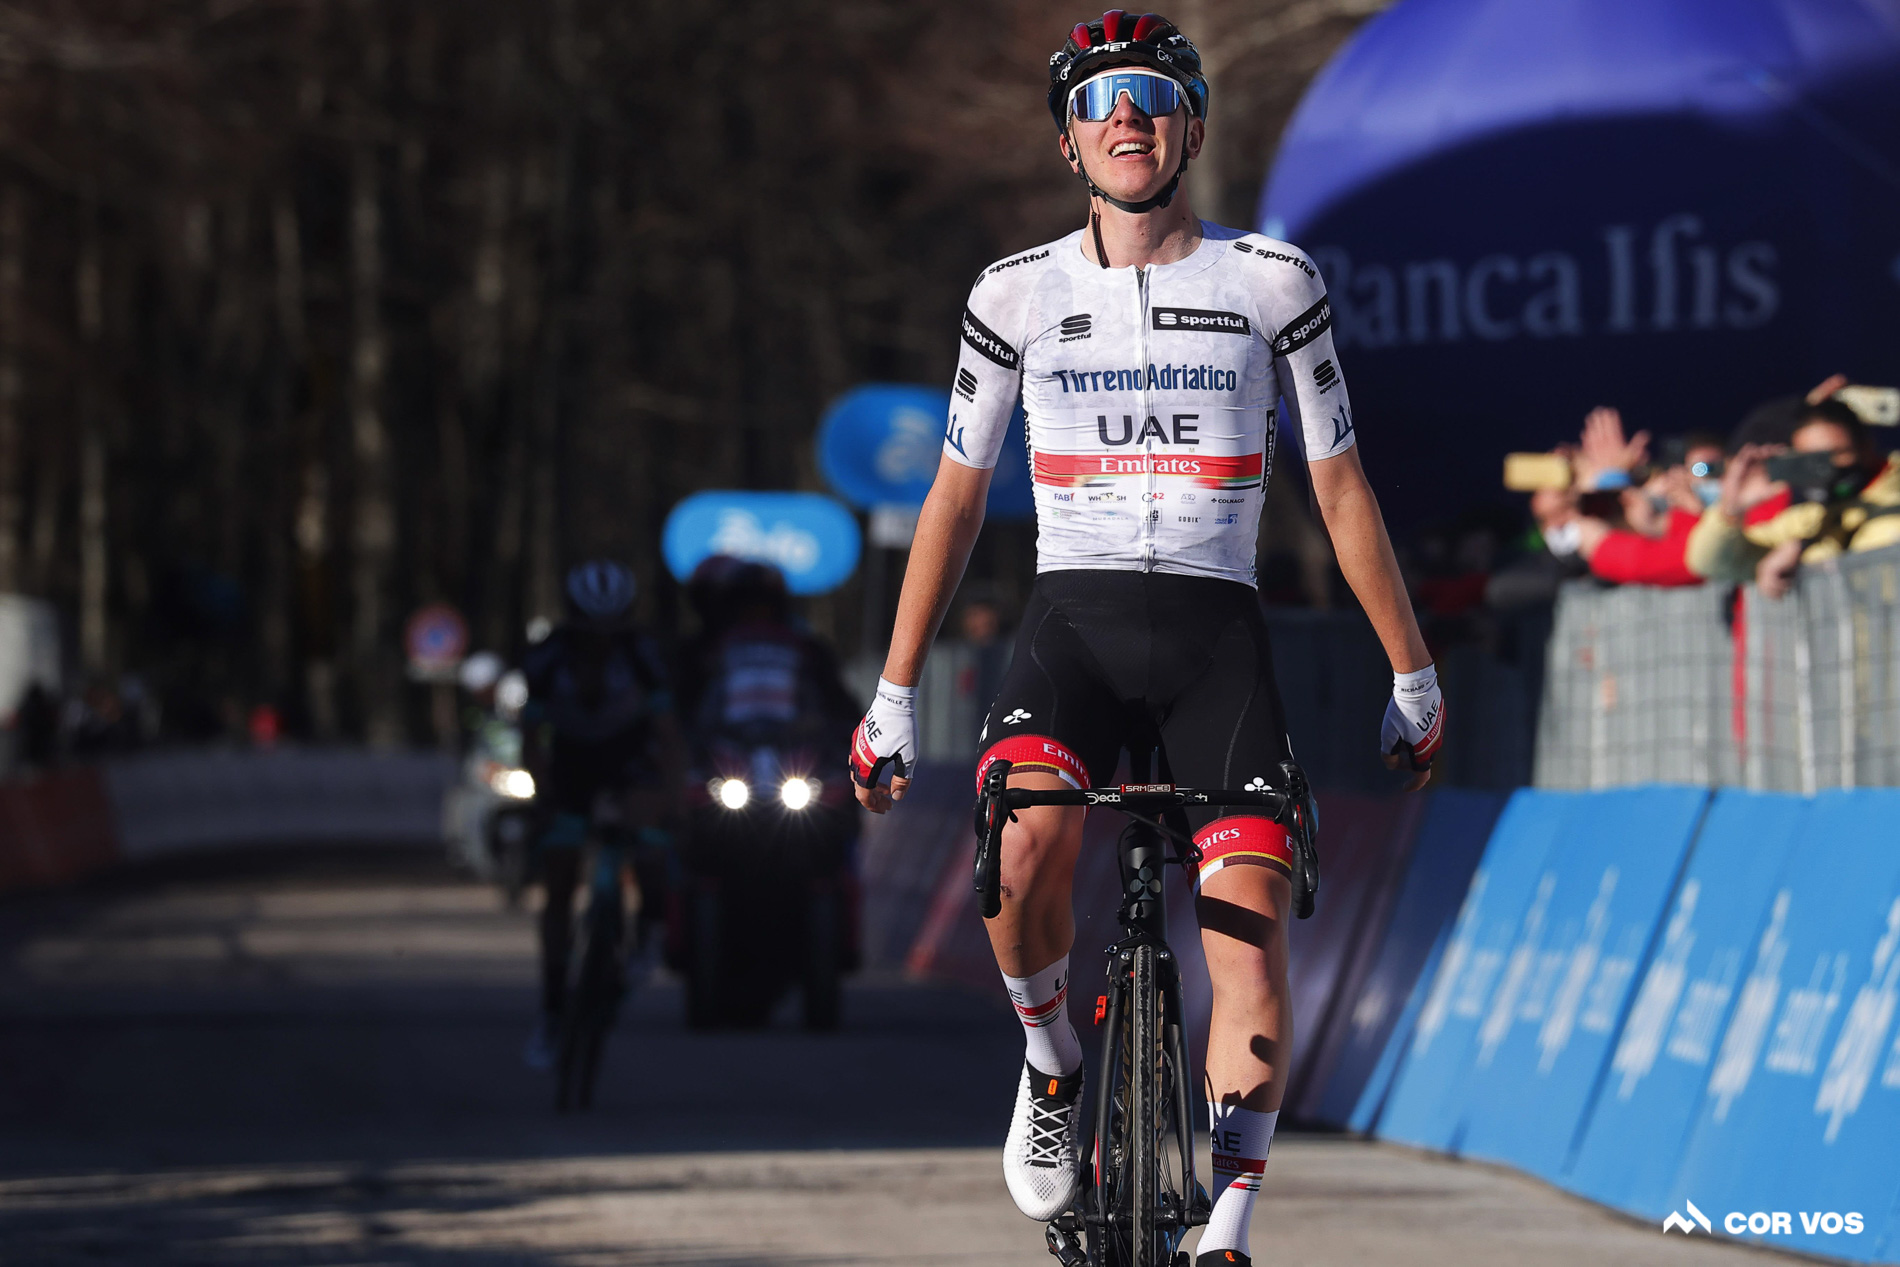 Pogacar wins Tirreno stage 4, takes overall lead from Van Aert